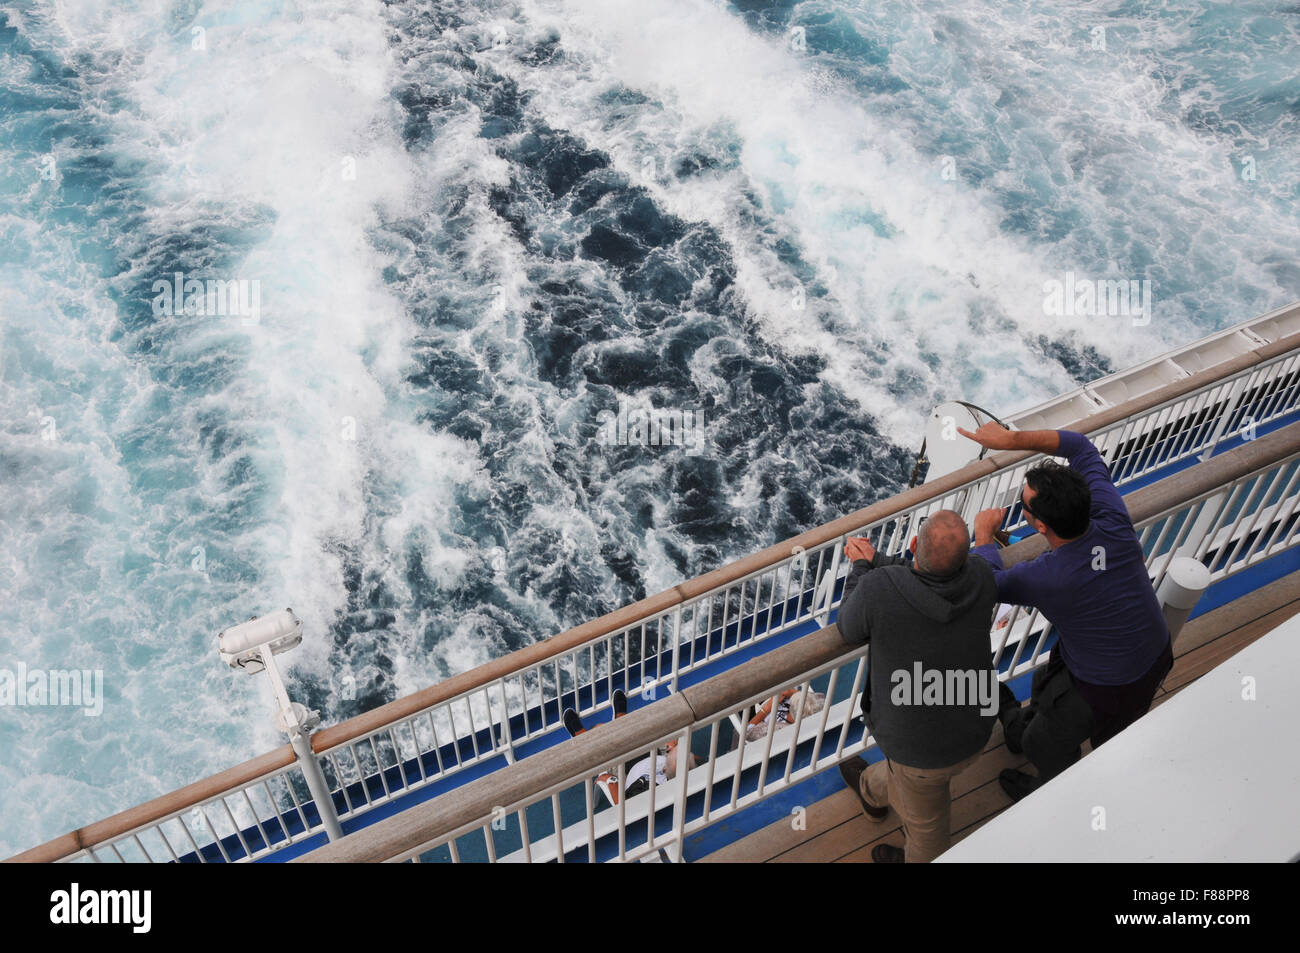 two men lean over rails and look out from ferry deck - Stock Image